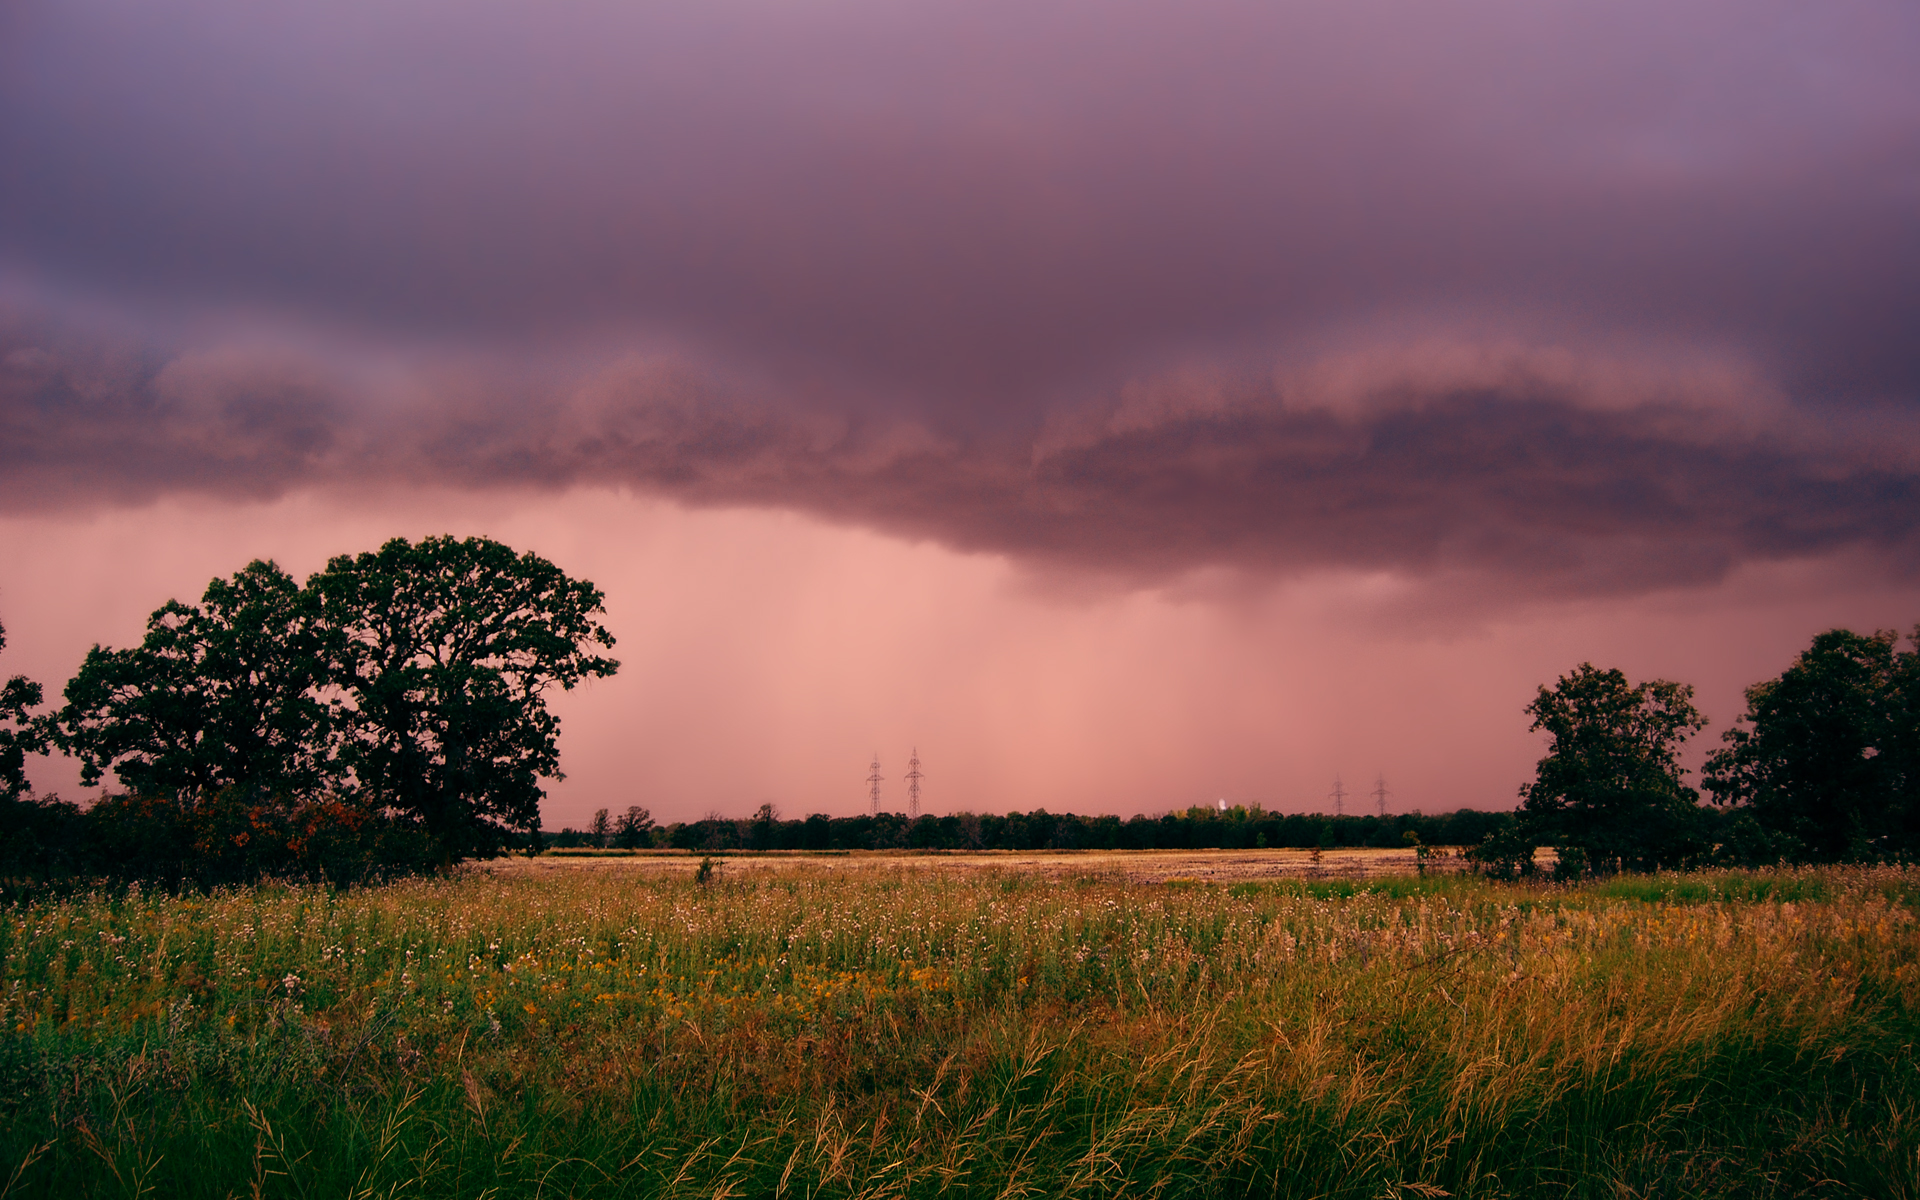 Storm by netherl